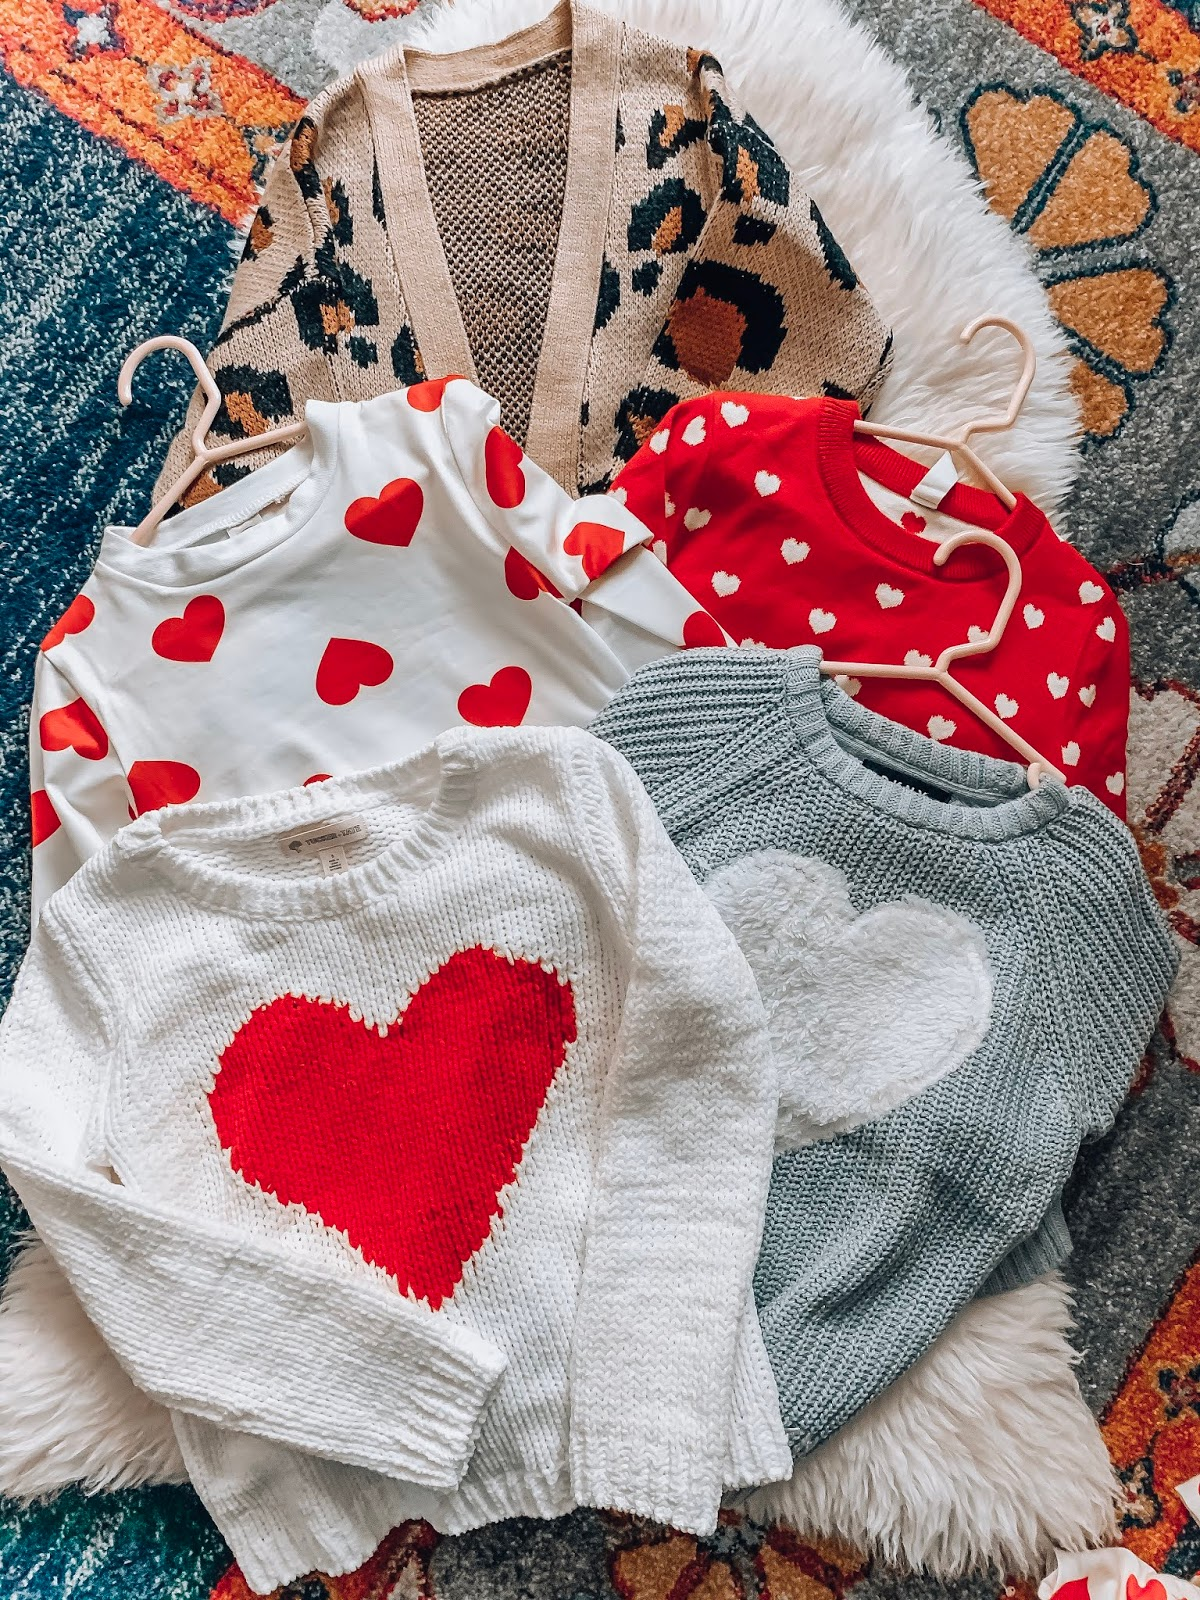 Recent Amazon Finds - Finds for Kids - Something Delightful Blog #AmazonFashion #RecentFinds #Hearts #ValentinesDay #AffordableFashion